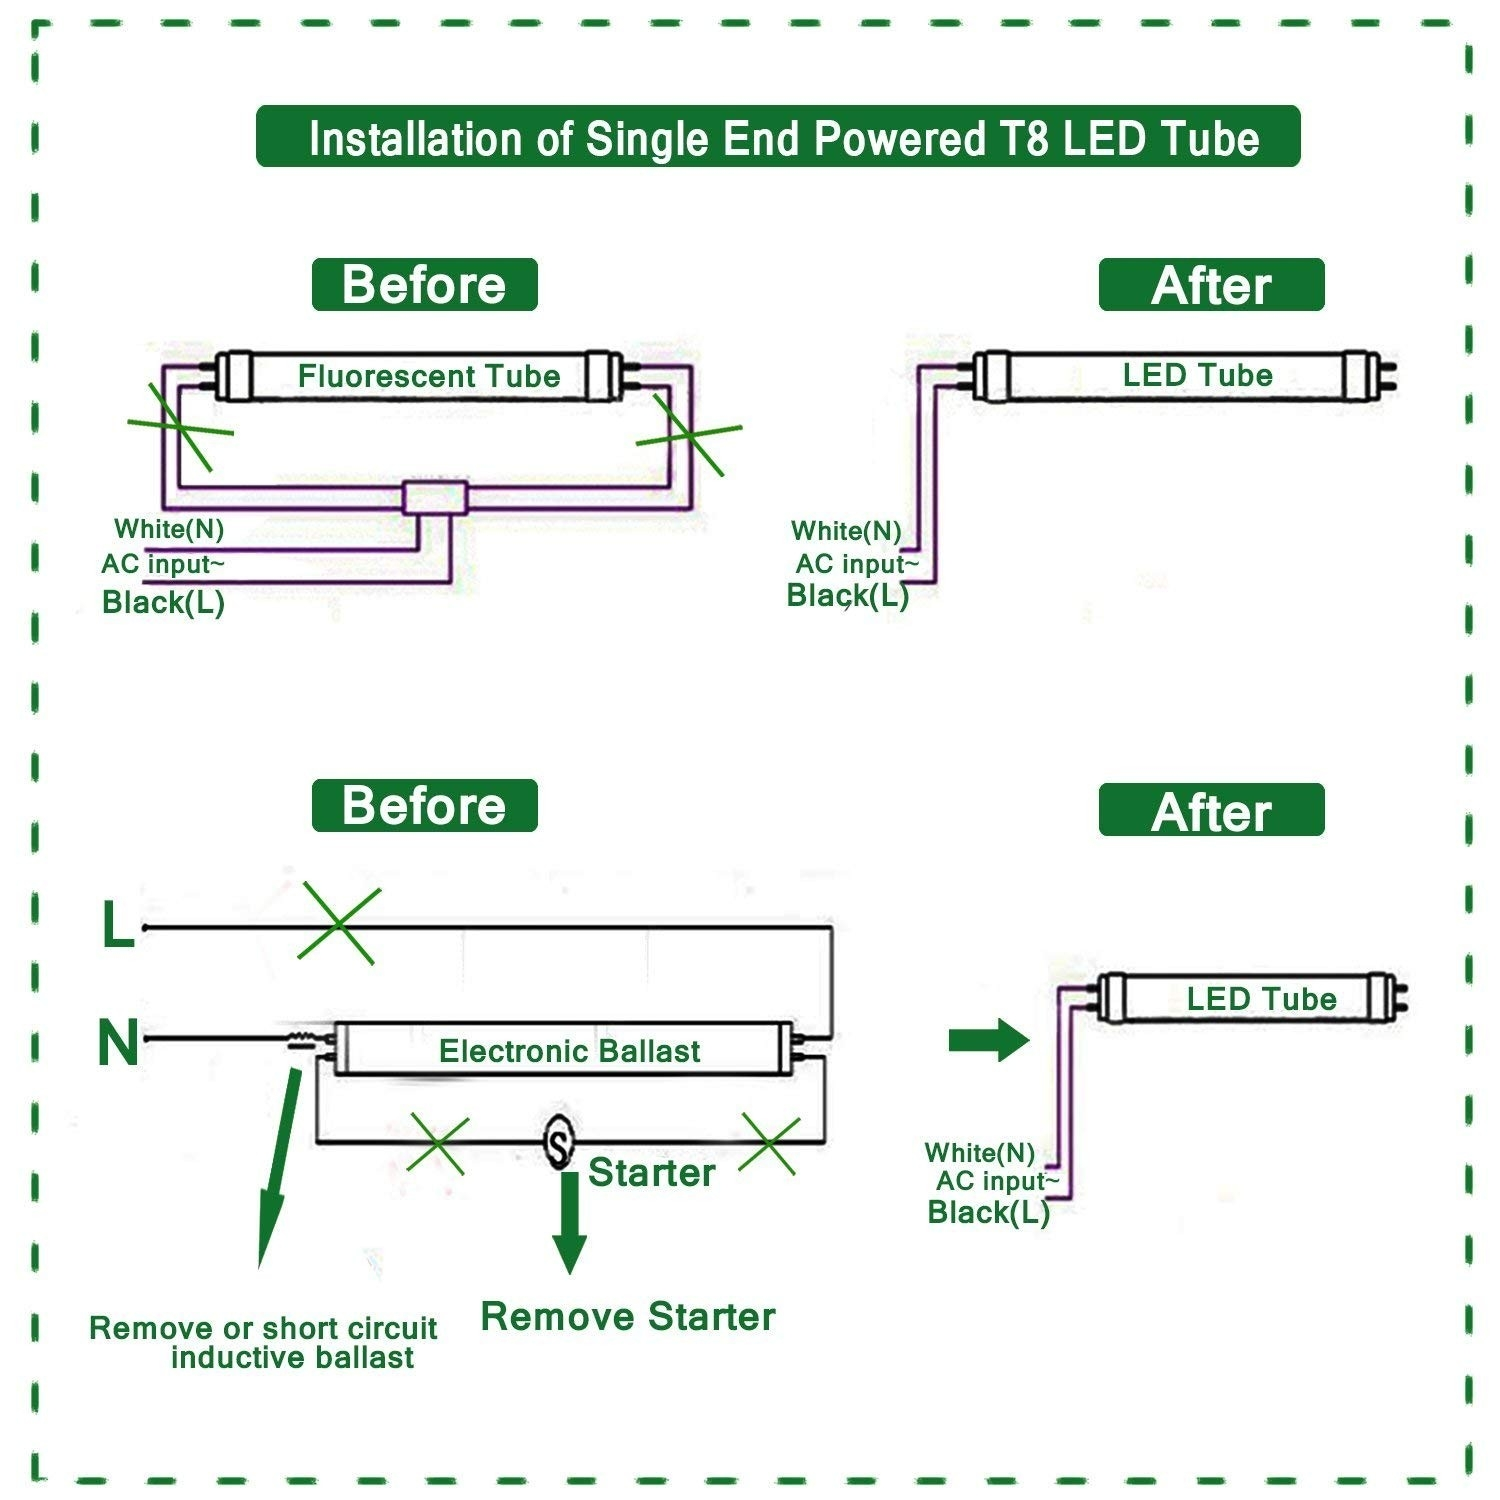 led tube wiring diagram electrical wiring diagram guide Wiring Diagram for LED Fluorescent Light